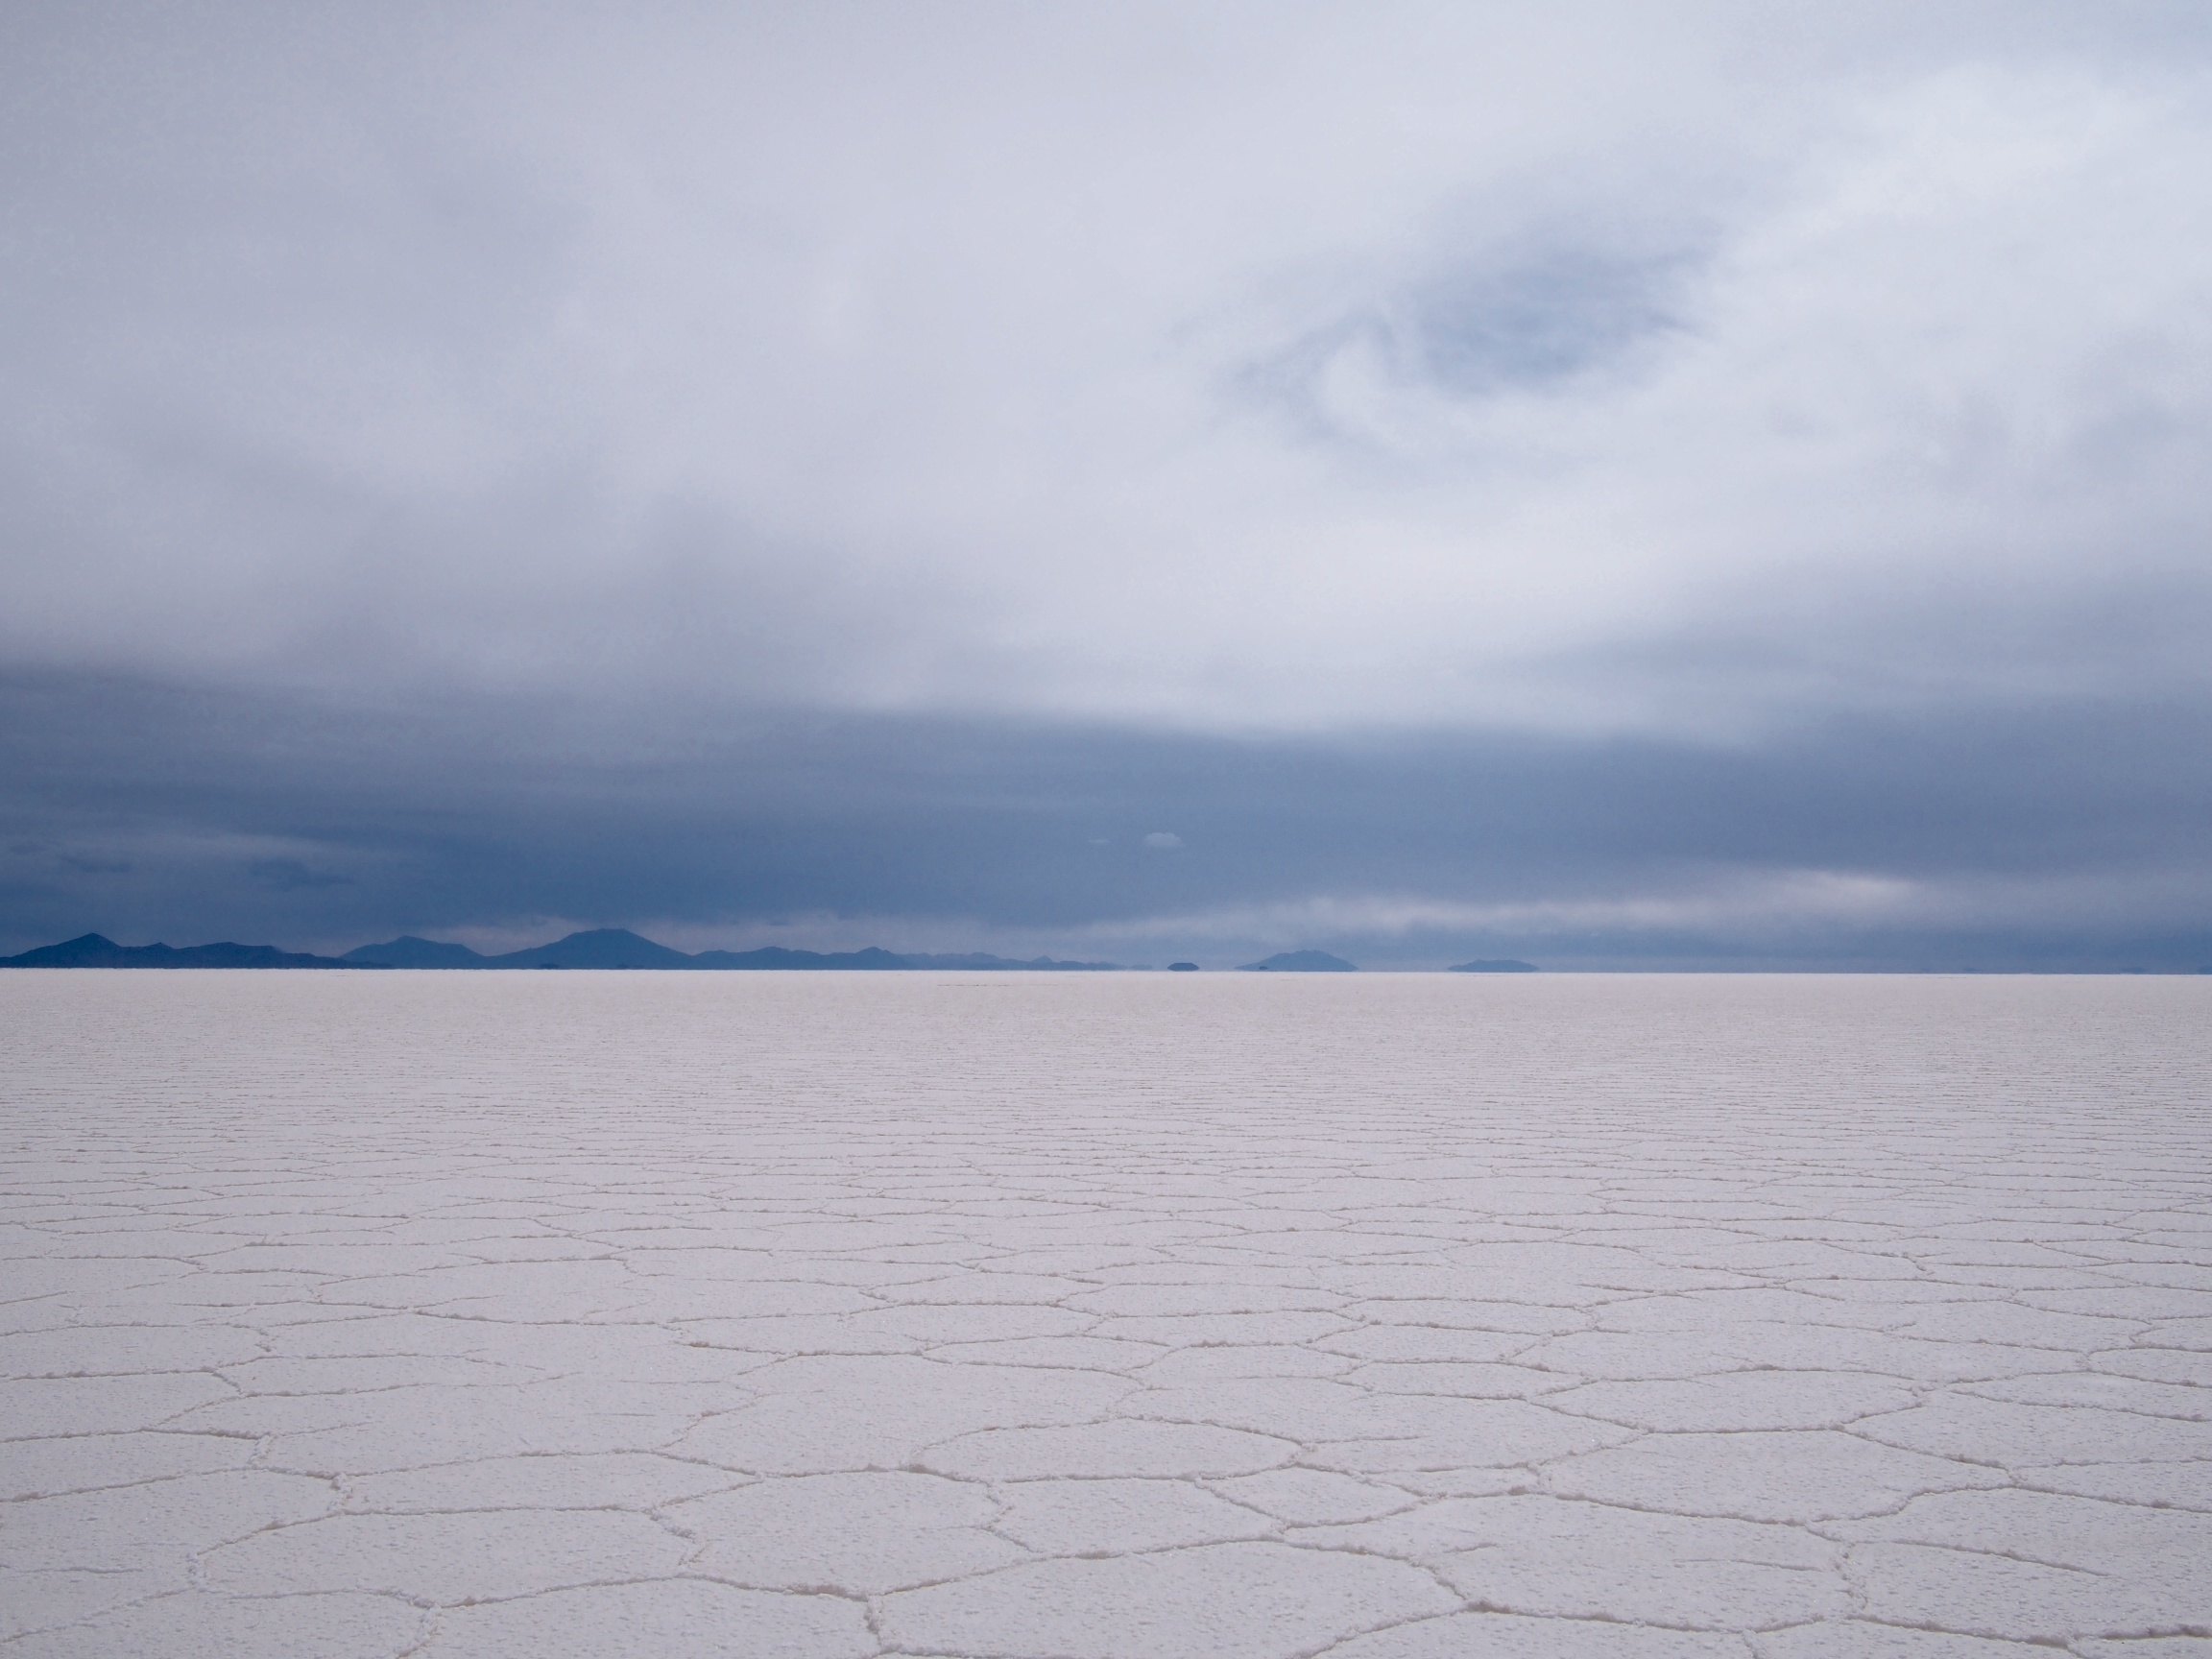 The world's largest salt flat in all its glory at 3,600 meters above sea level